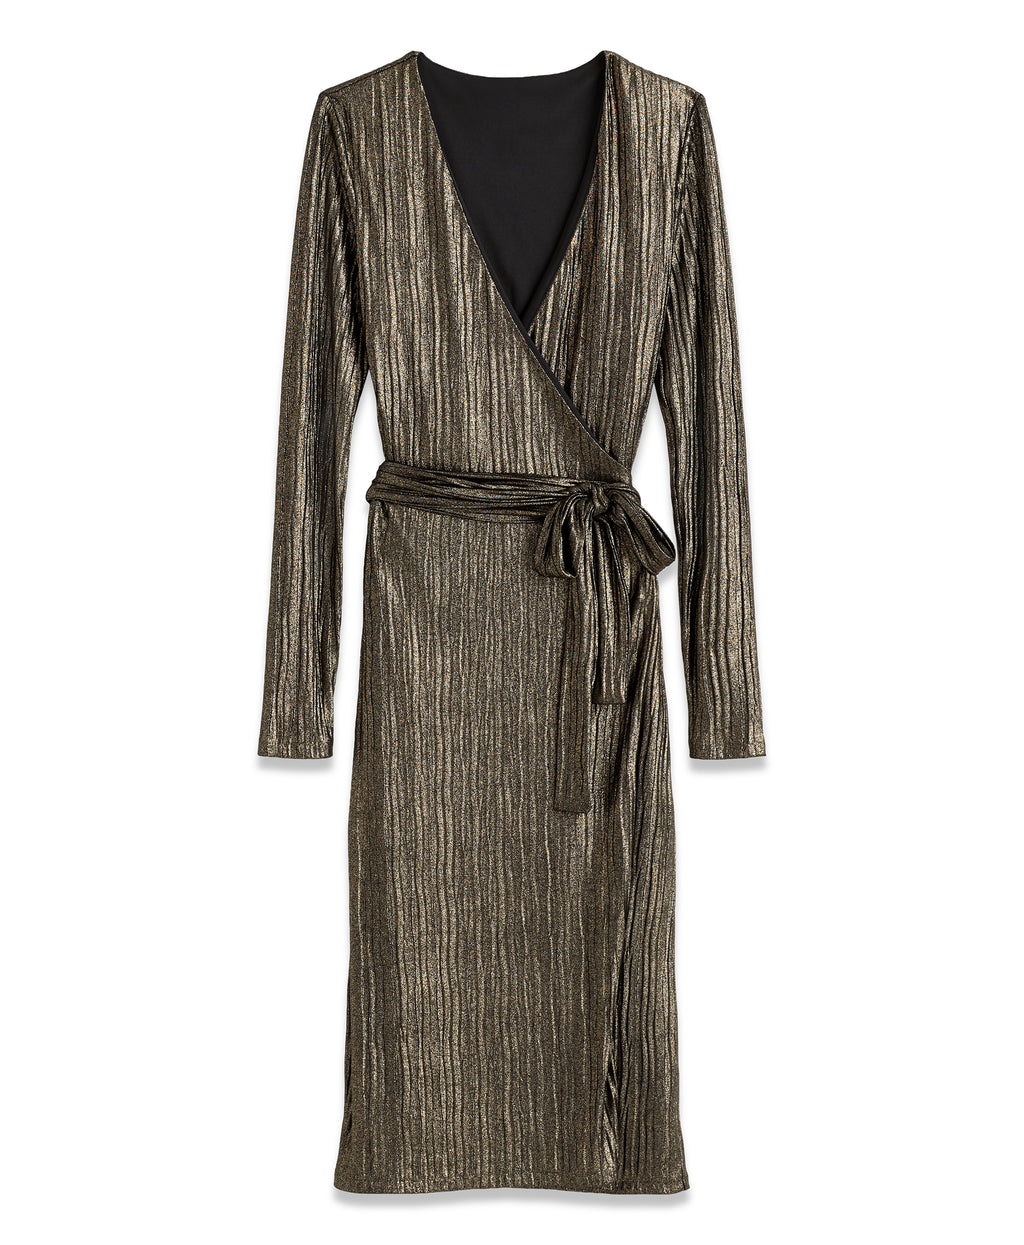 METALLIC WRAP DRESS | METALLIC WRAP DRESS